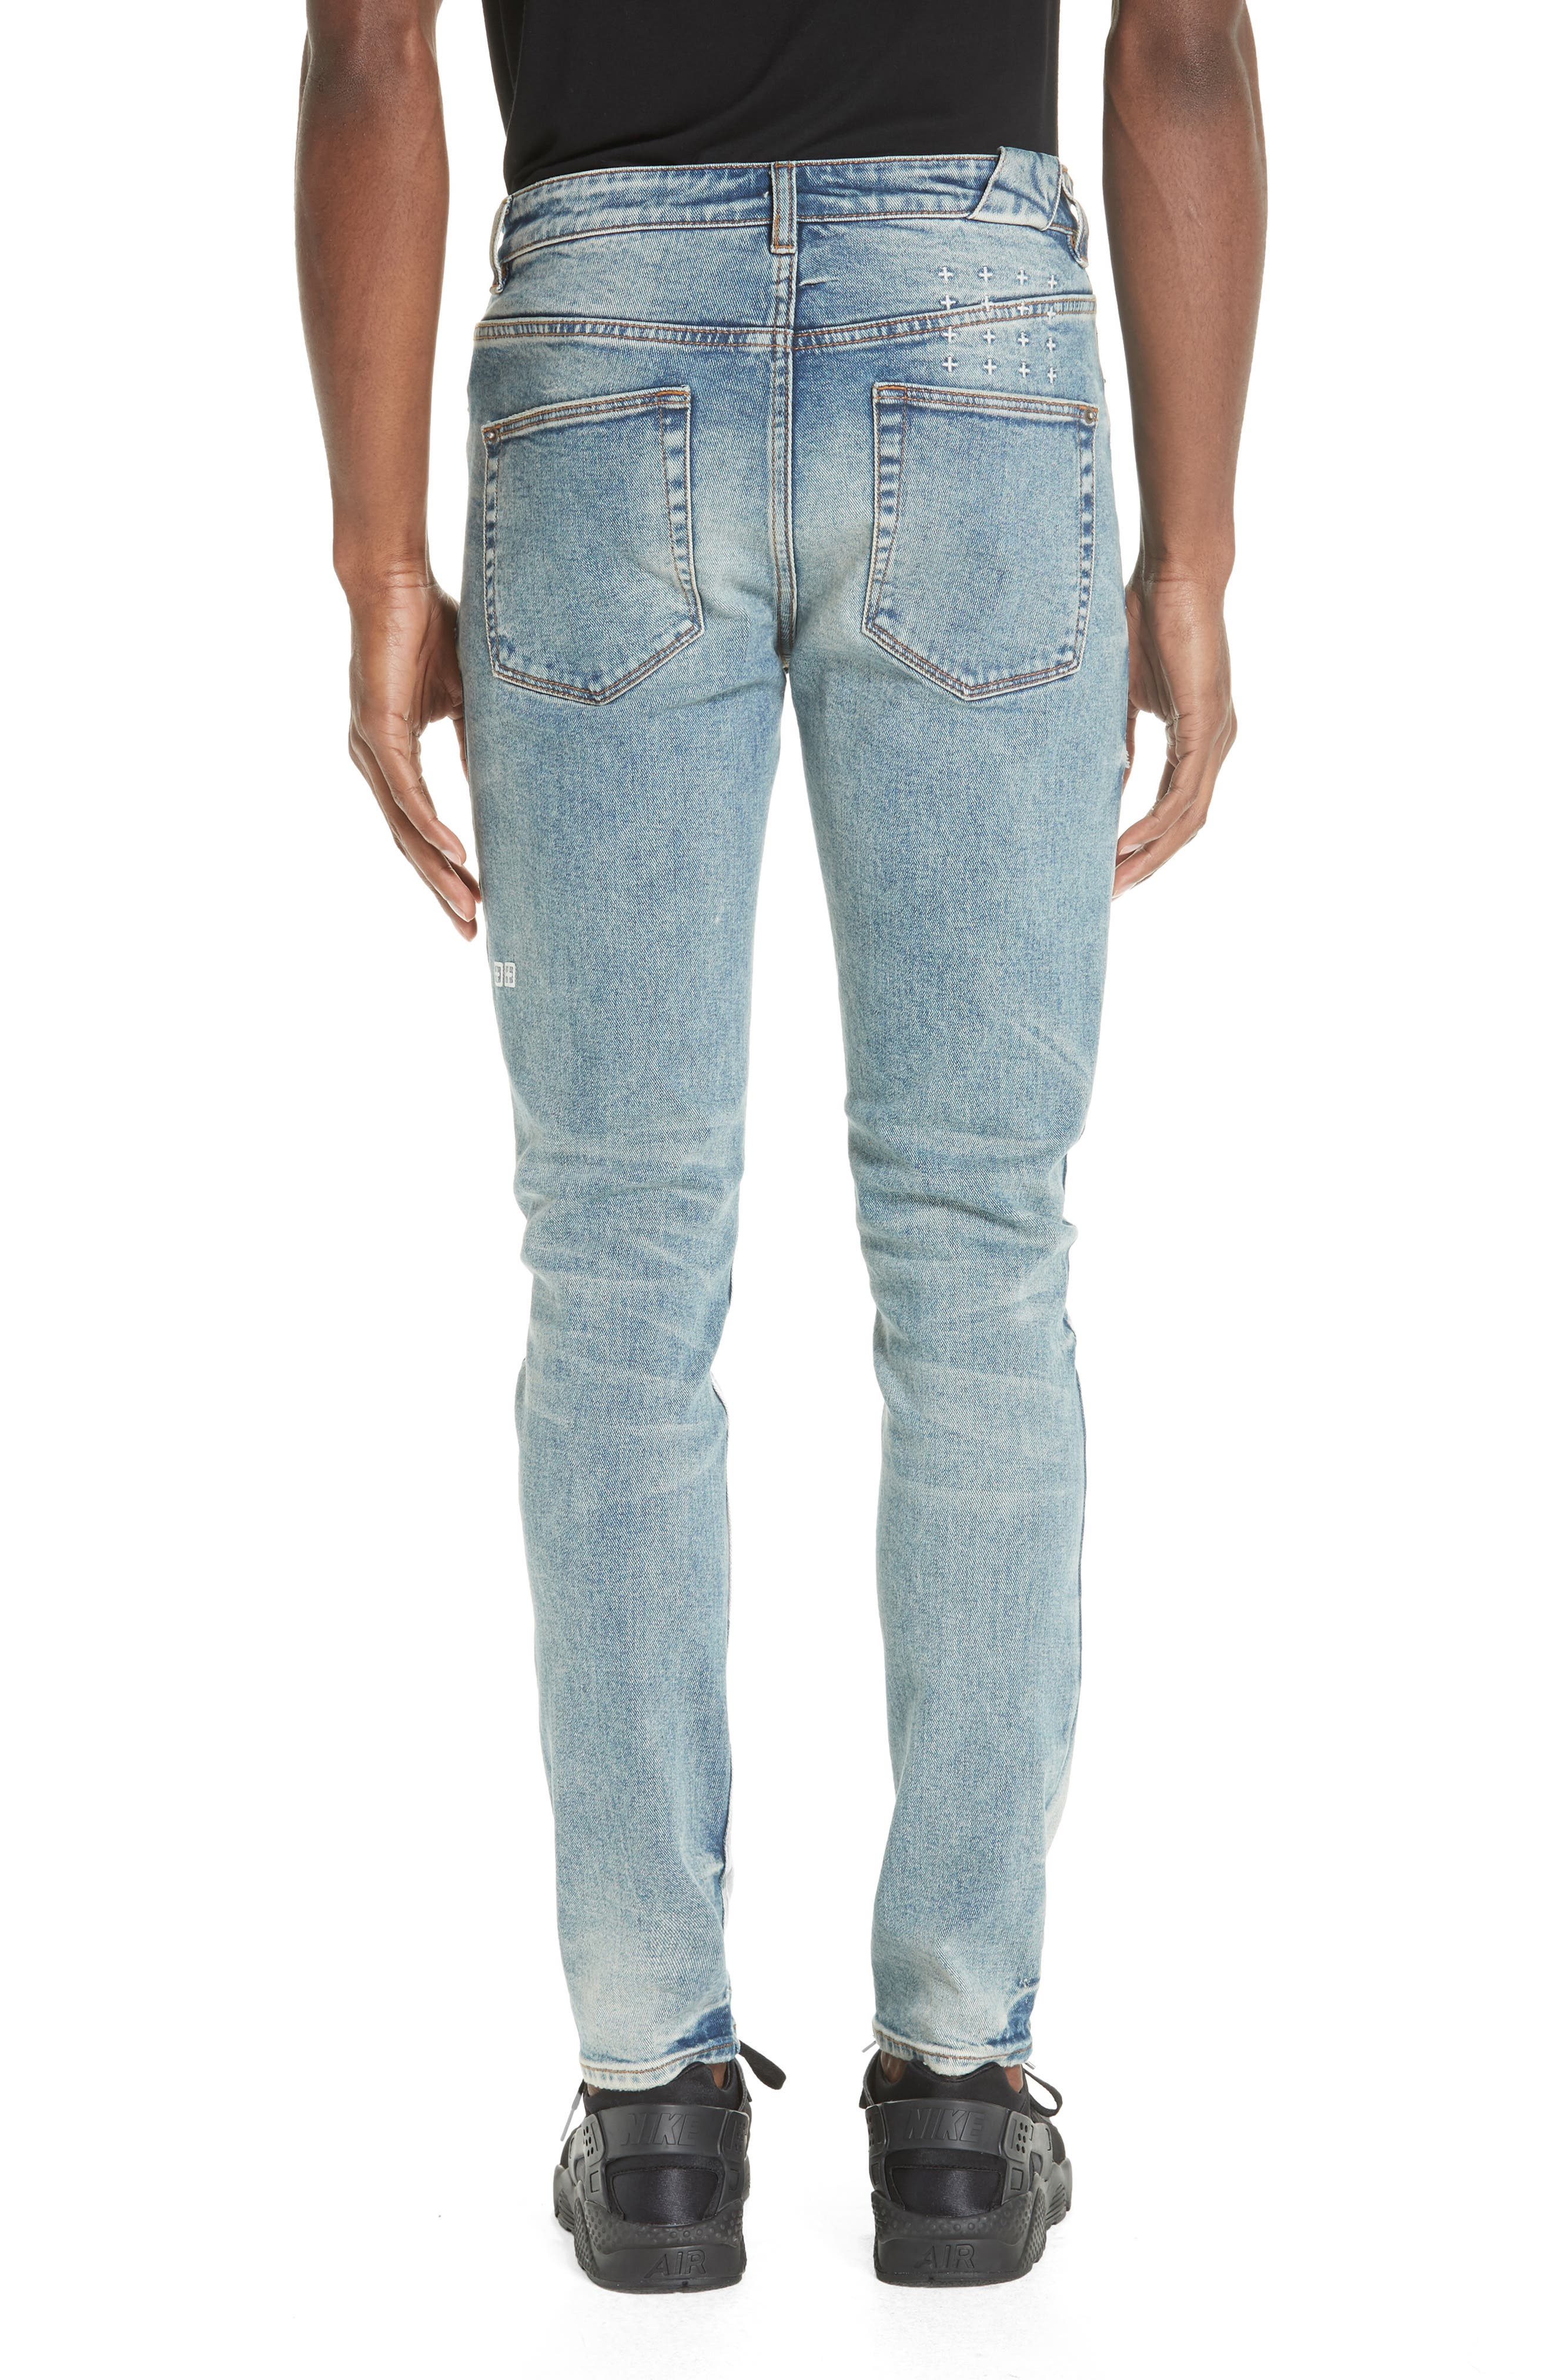 Chitch Pure Dynamite Skinny Fit Jeans,                             Alternate thumbnail 2, color,                             DENIM